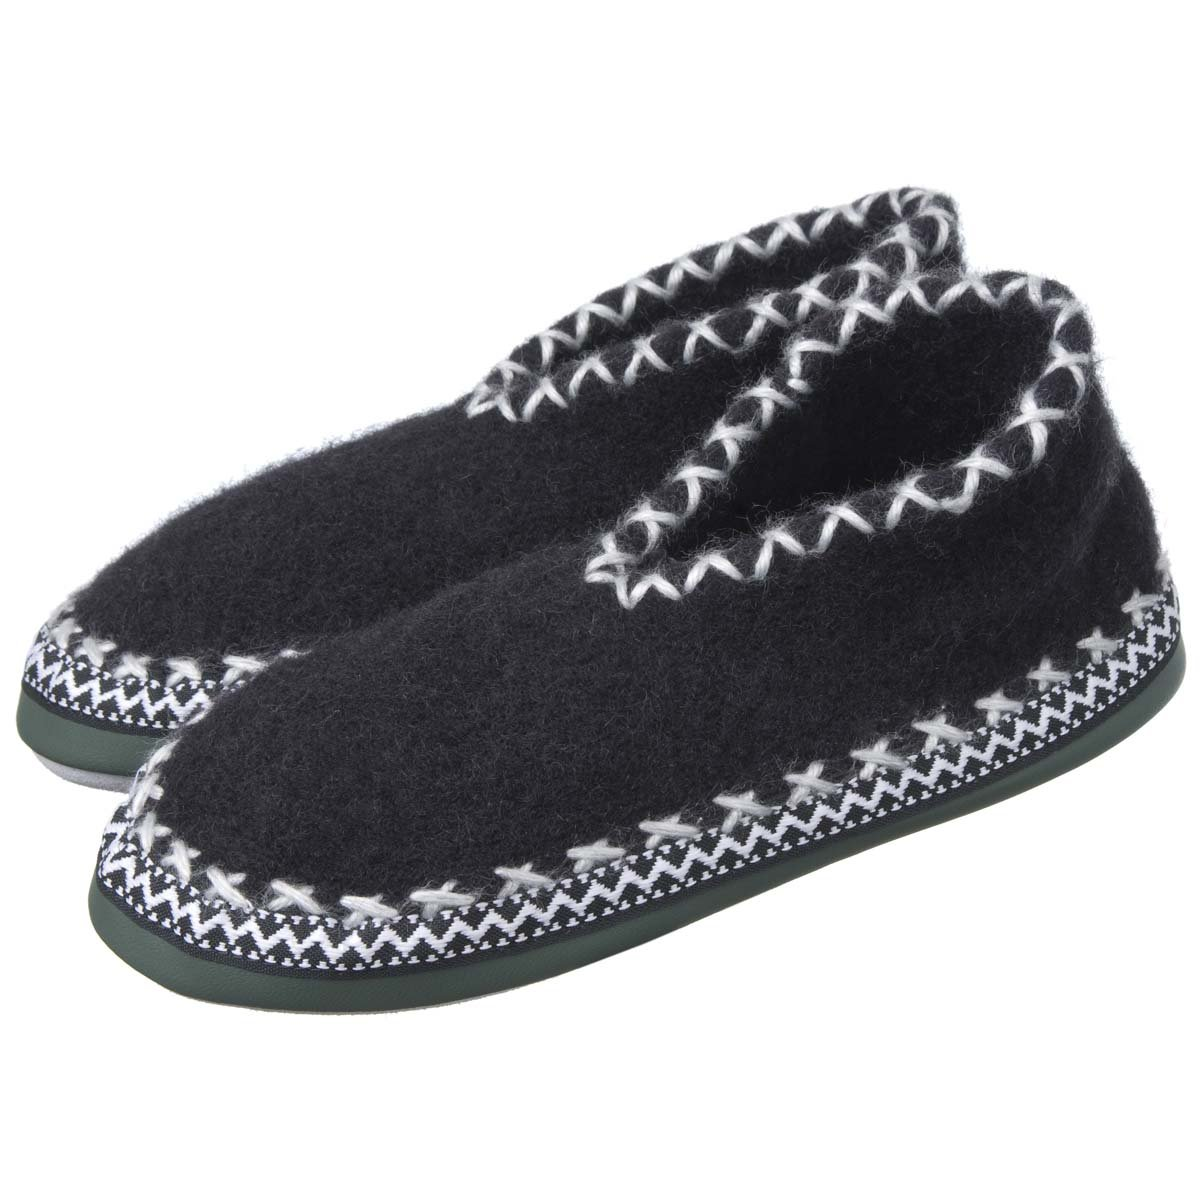 7bcb1115baa Slippers in soft wool with leather sole